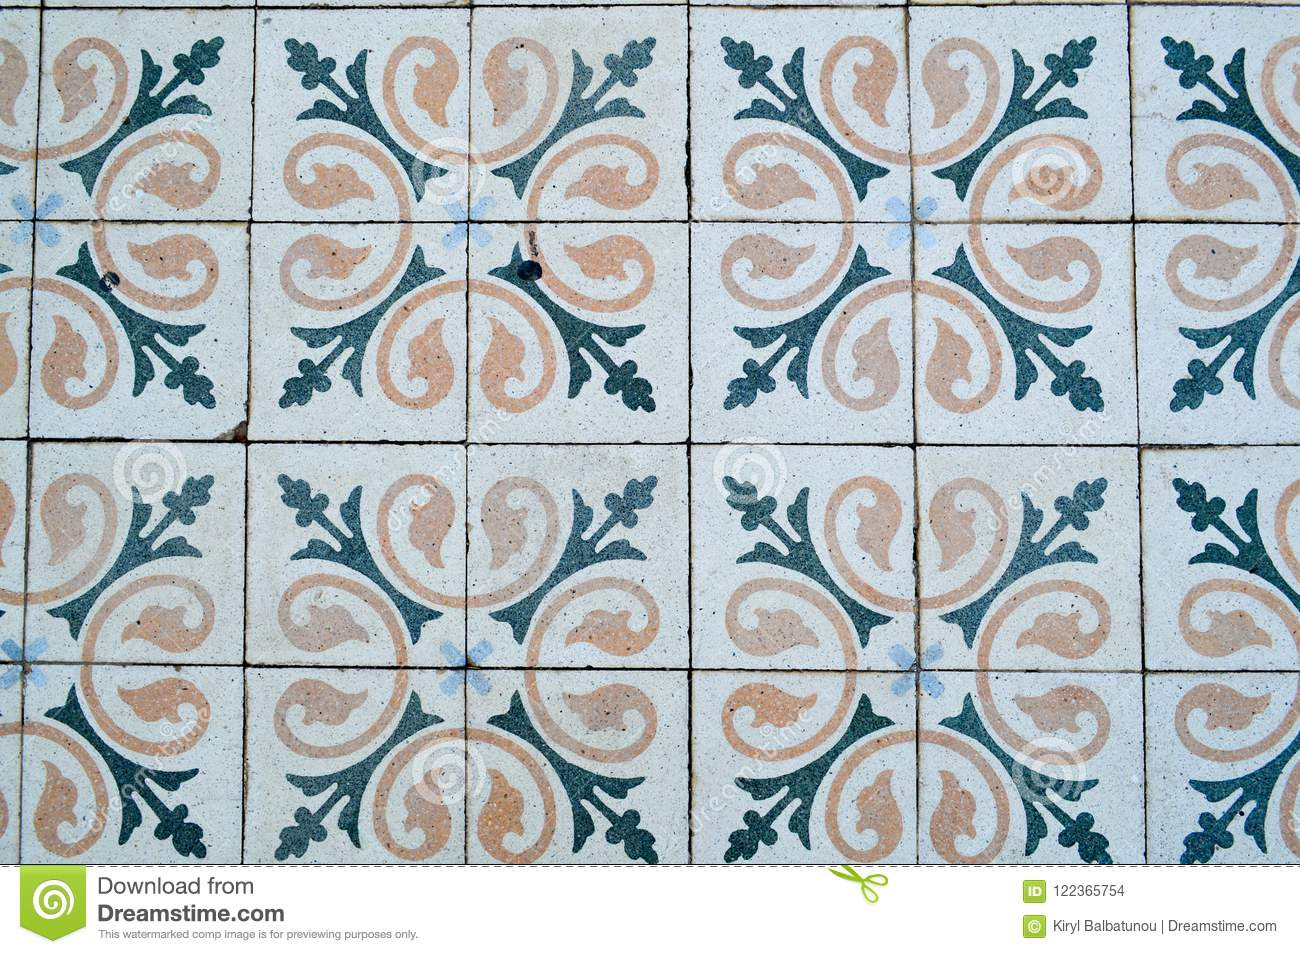 The Texture Of Square Ceramic Tiles With Patterns From Traditional ...